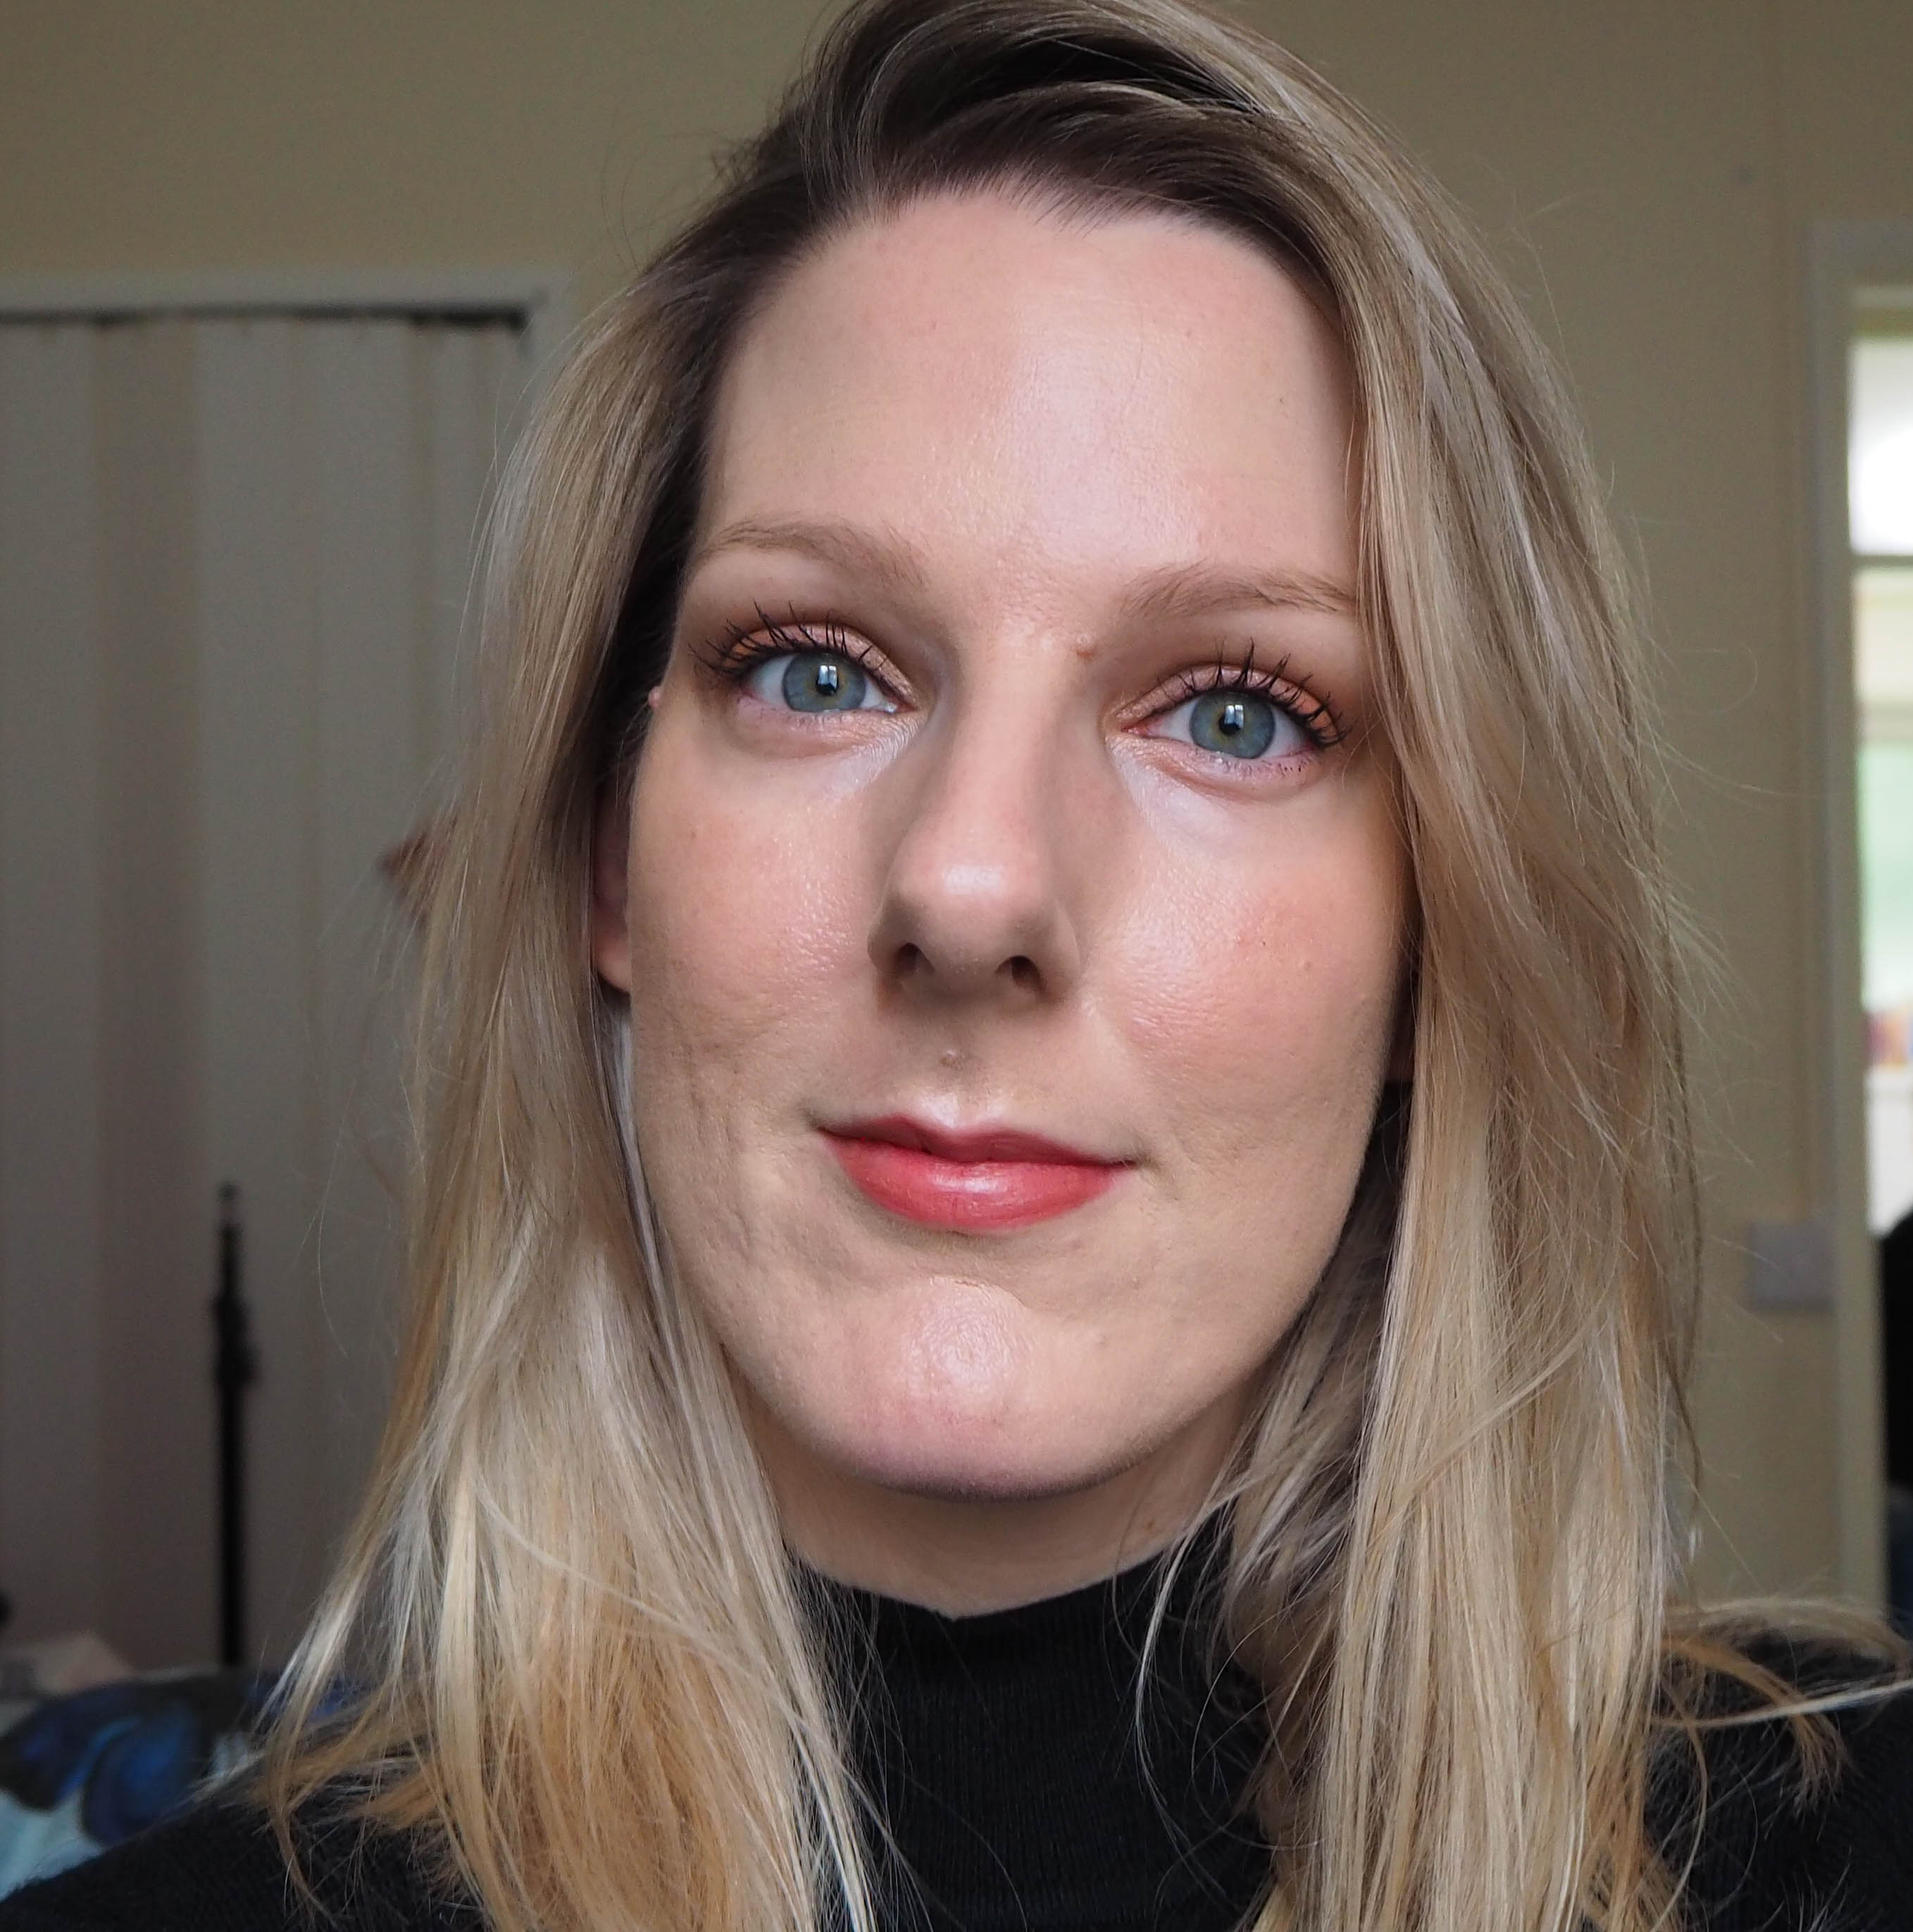 Charlotte Tilbury Airbrush Flawless Foundation FOTD